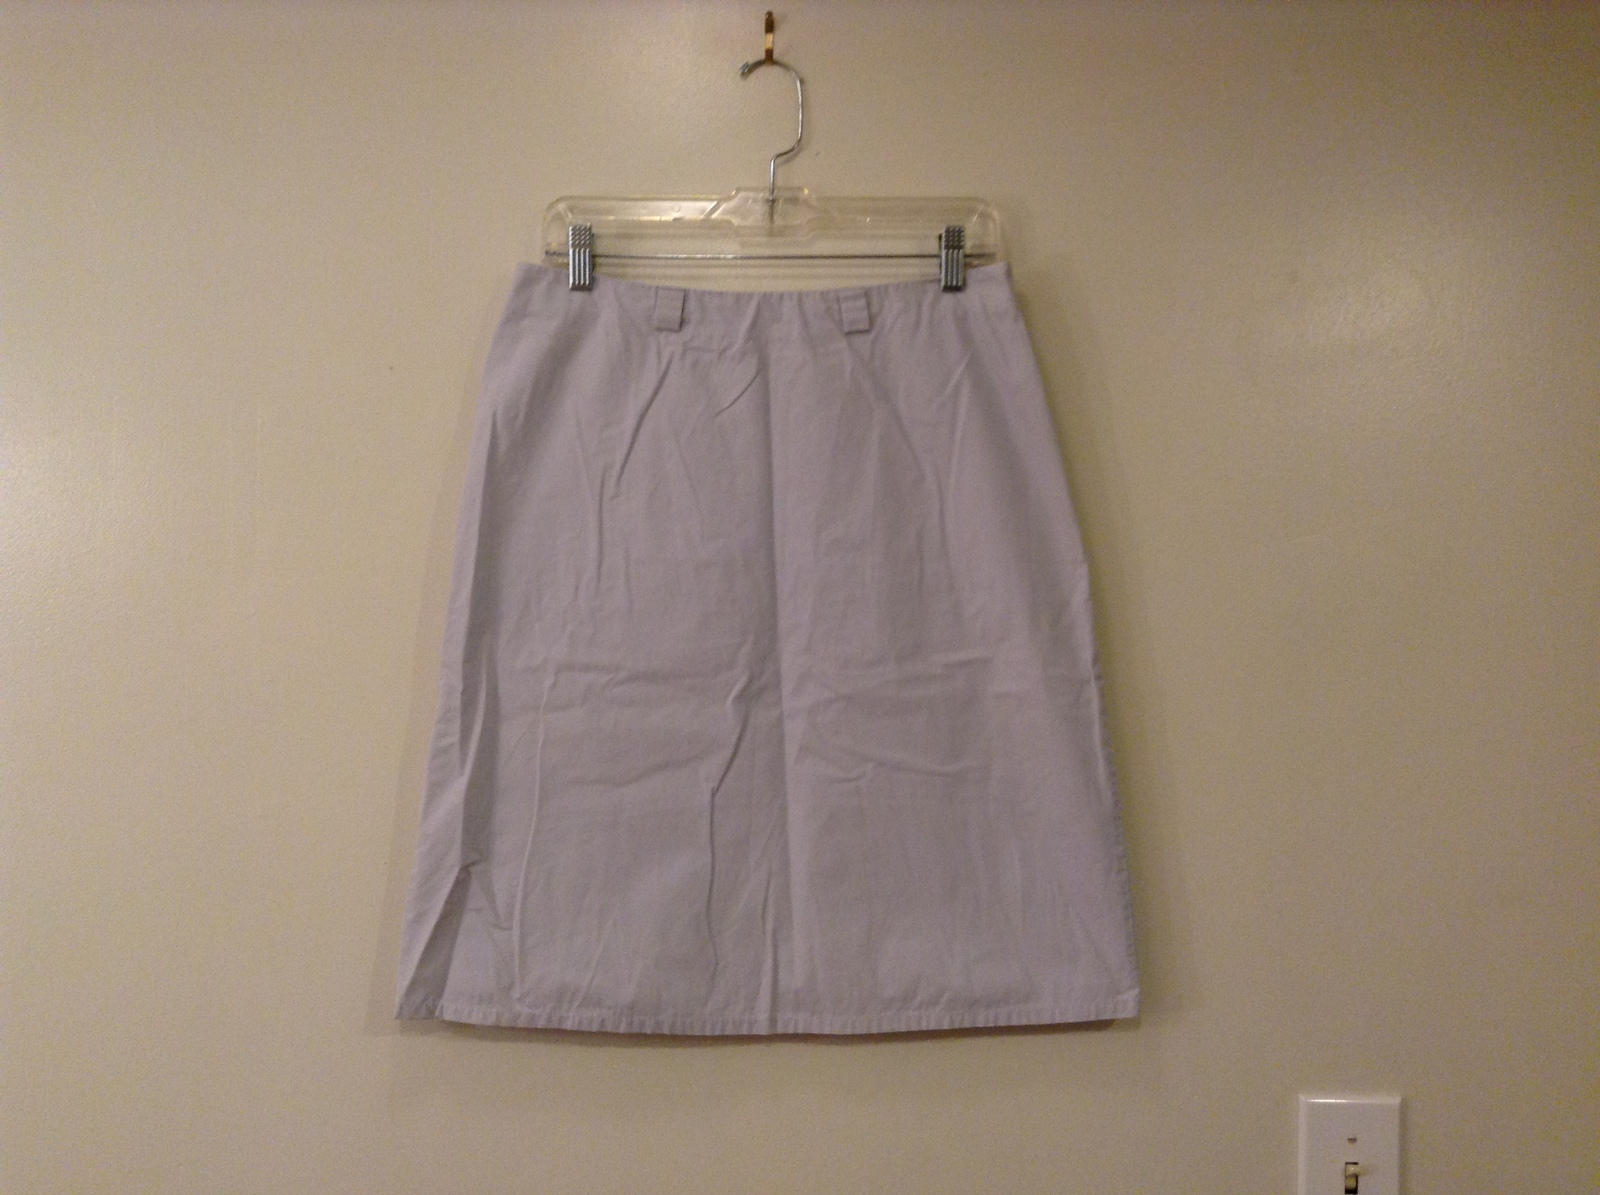 Banana Republic 100% Cotton very Light Lavender Pencil Skirt, size 10 unlined